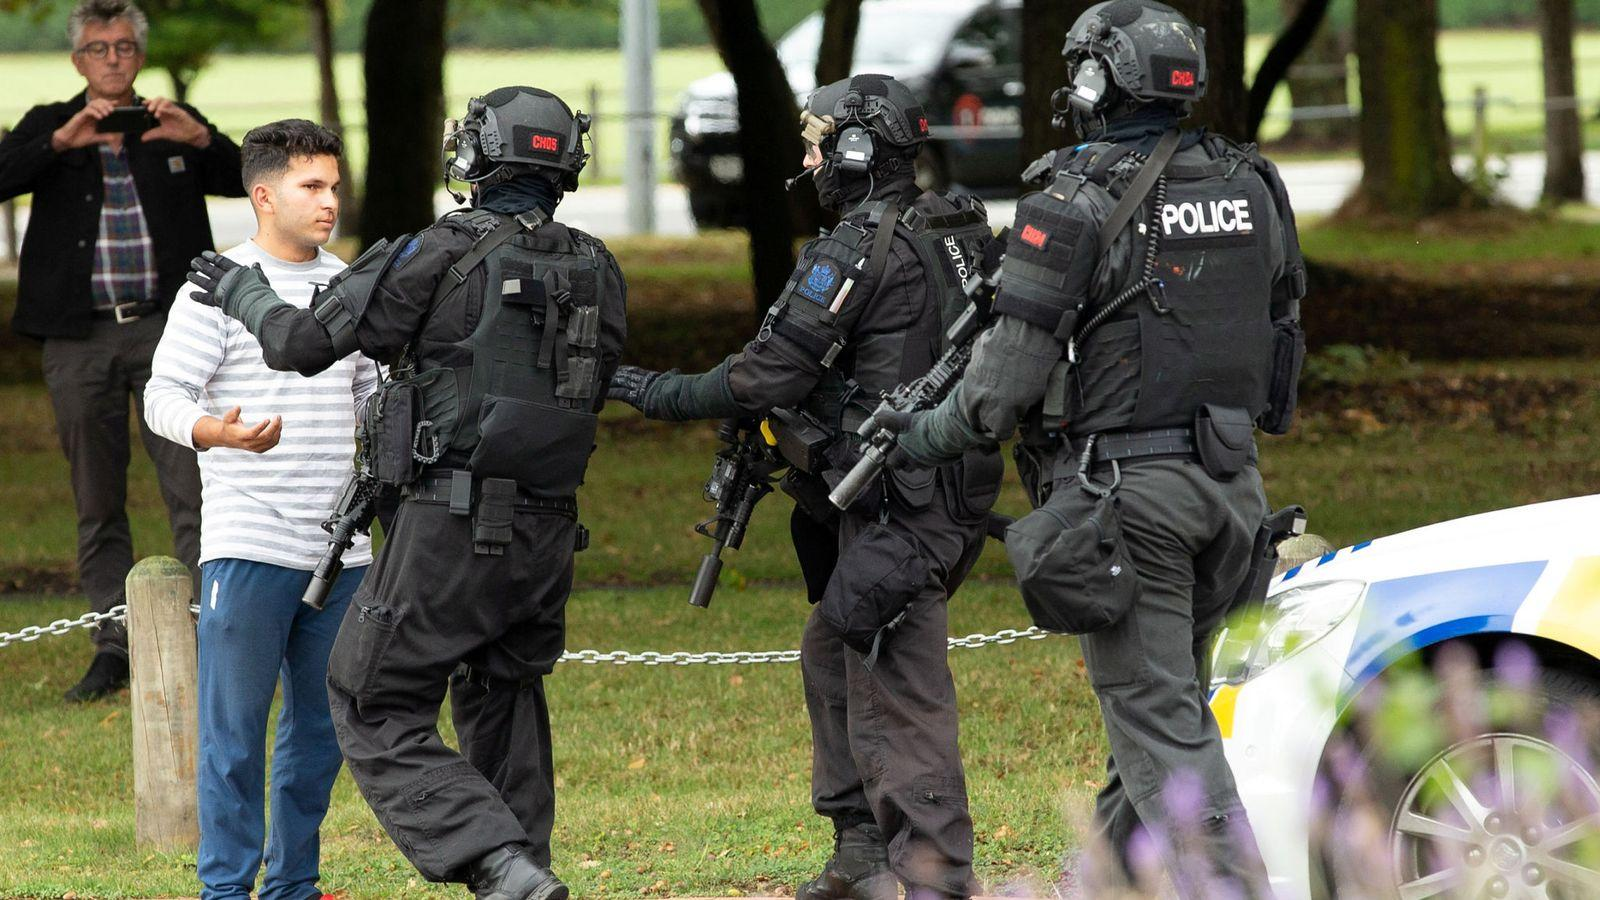 Armed officers push back members of the public from the scene